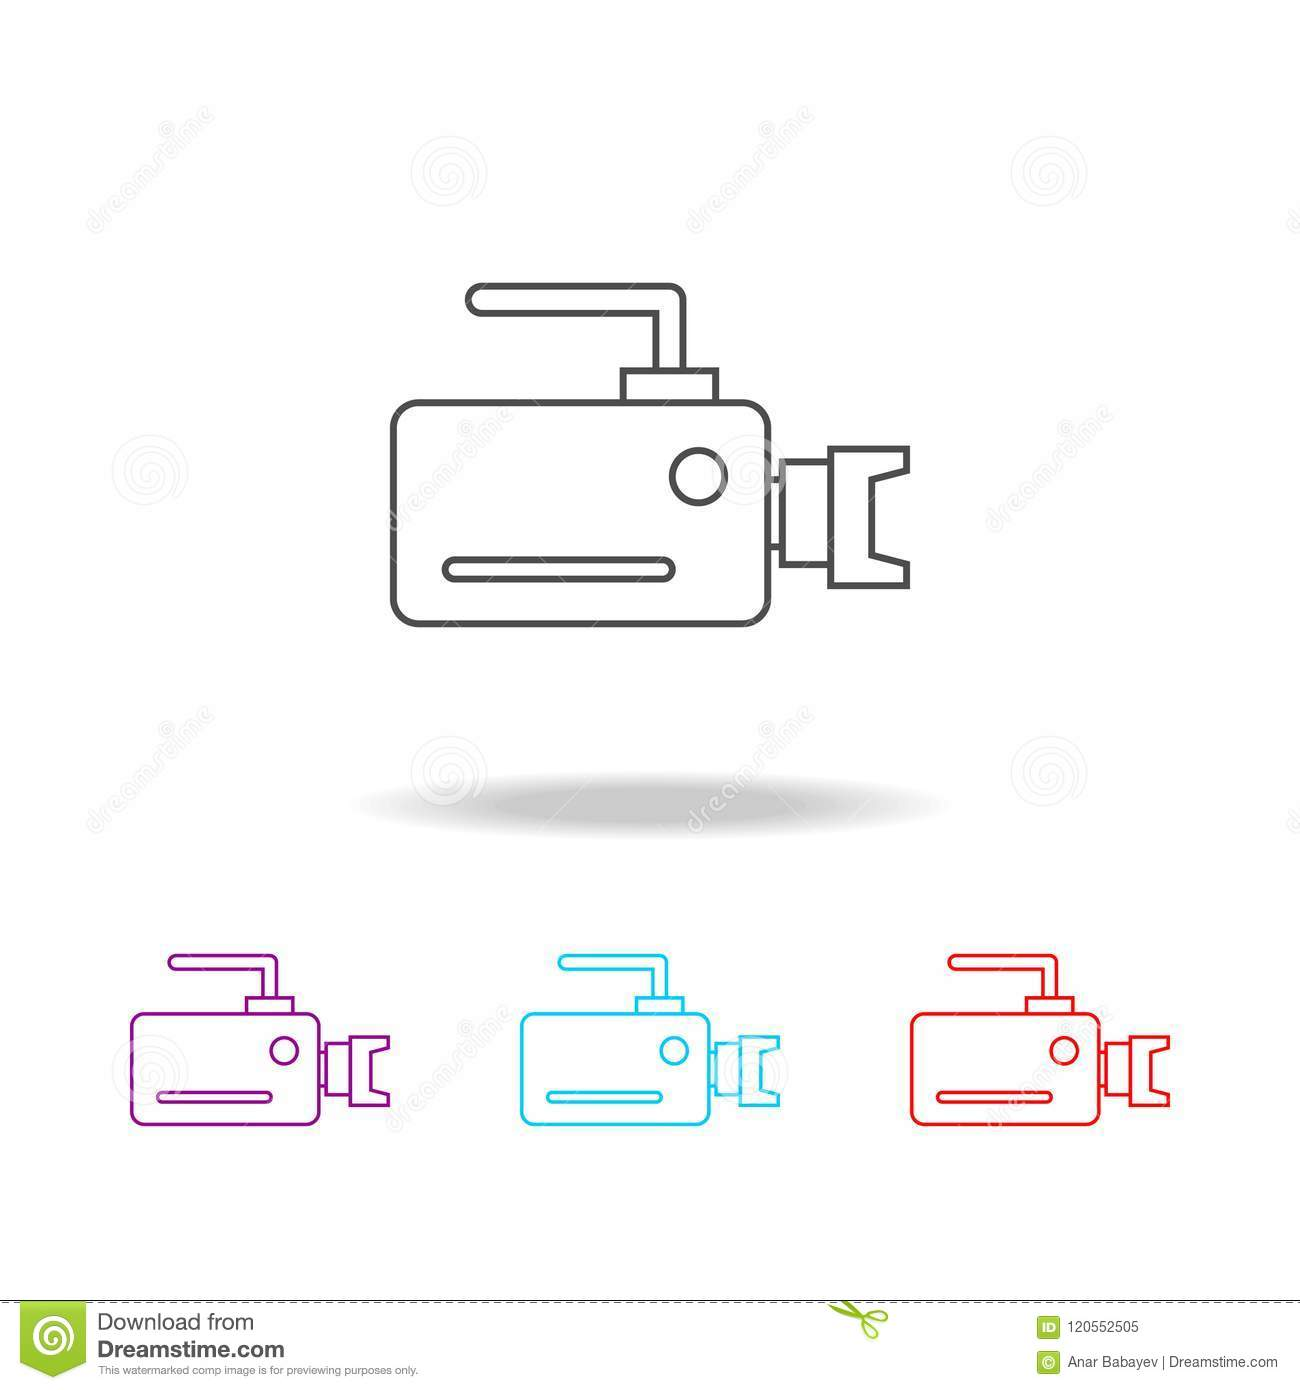 hight resolution of camera icons elements of photo in multi colored icons premium quality graphic design icon simple icon for websites web design mobile app info graphics